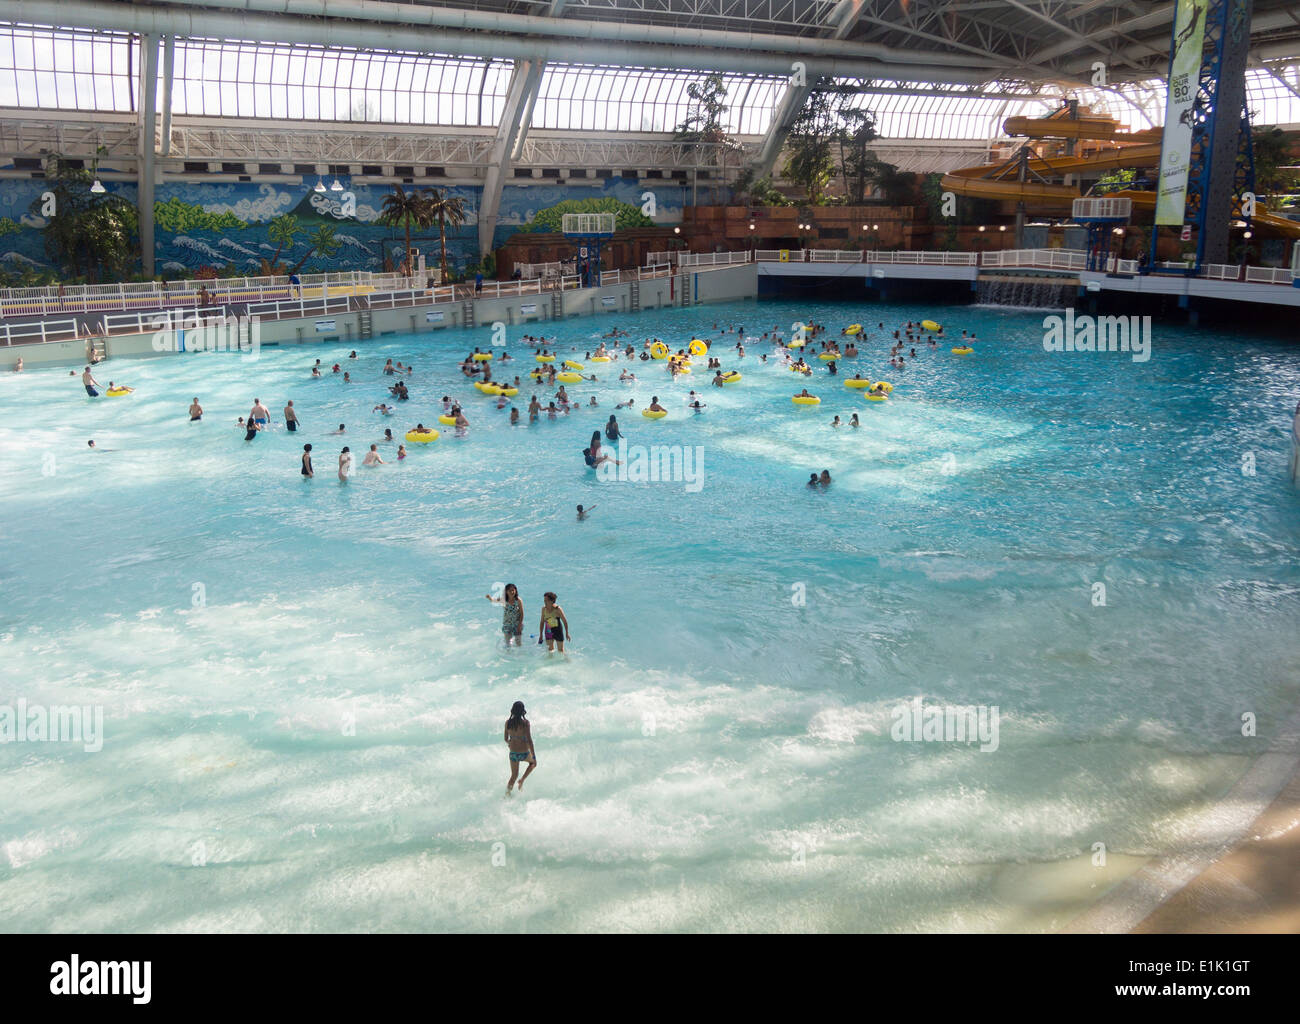 Wave Pool At The West Edmonton Mall The Large Indoor Pool At This Stock Photo Royalty Free